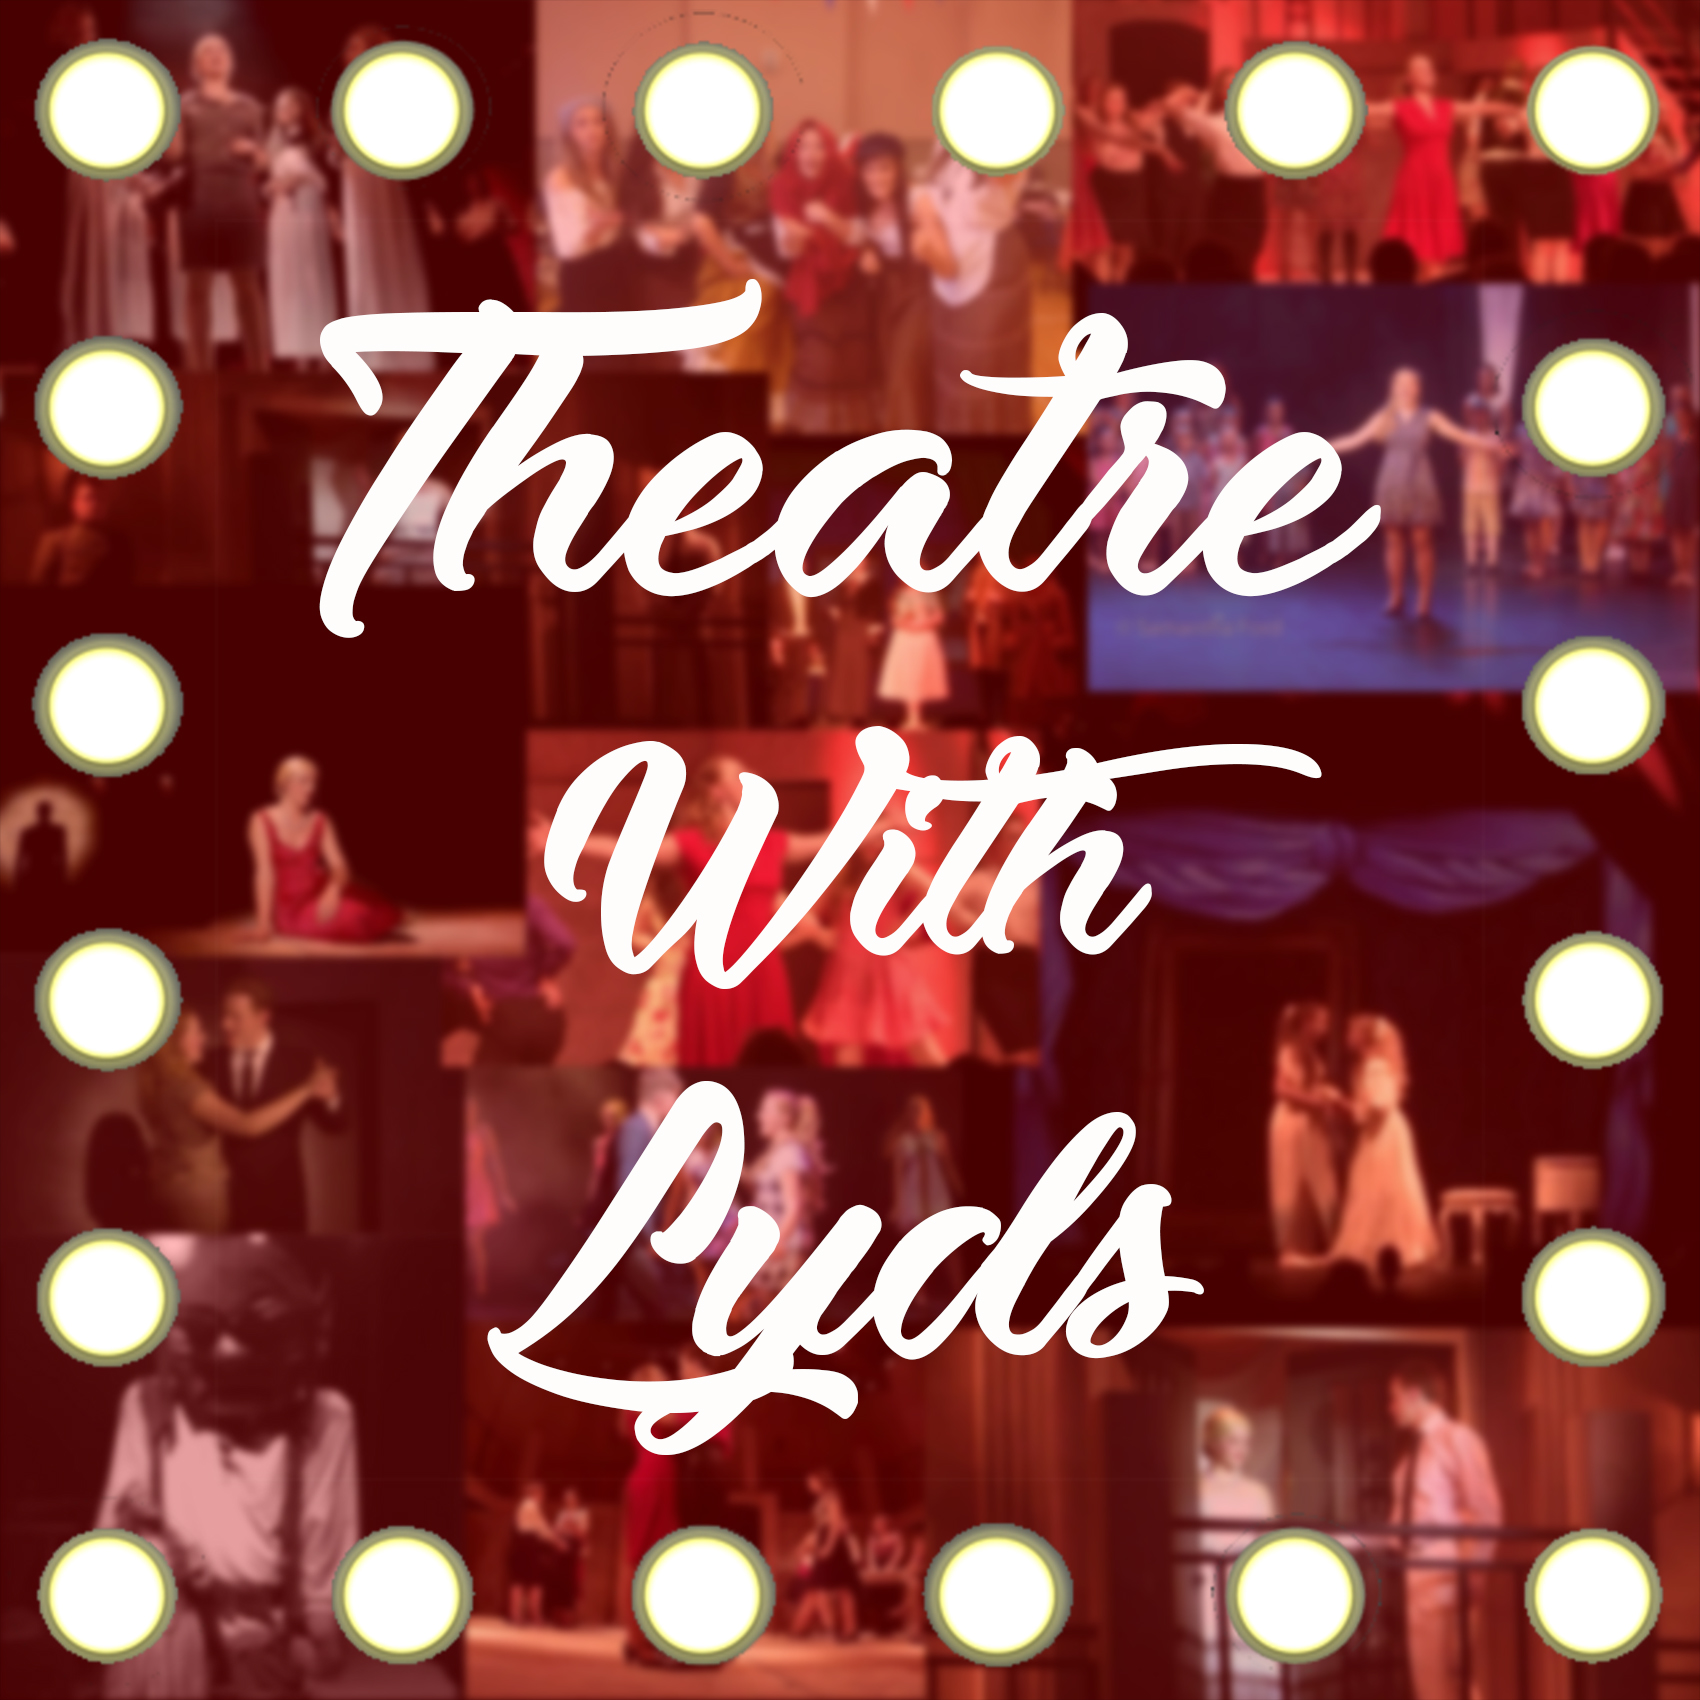 #TheatreWithLyds Podcast - Episode 2